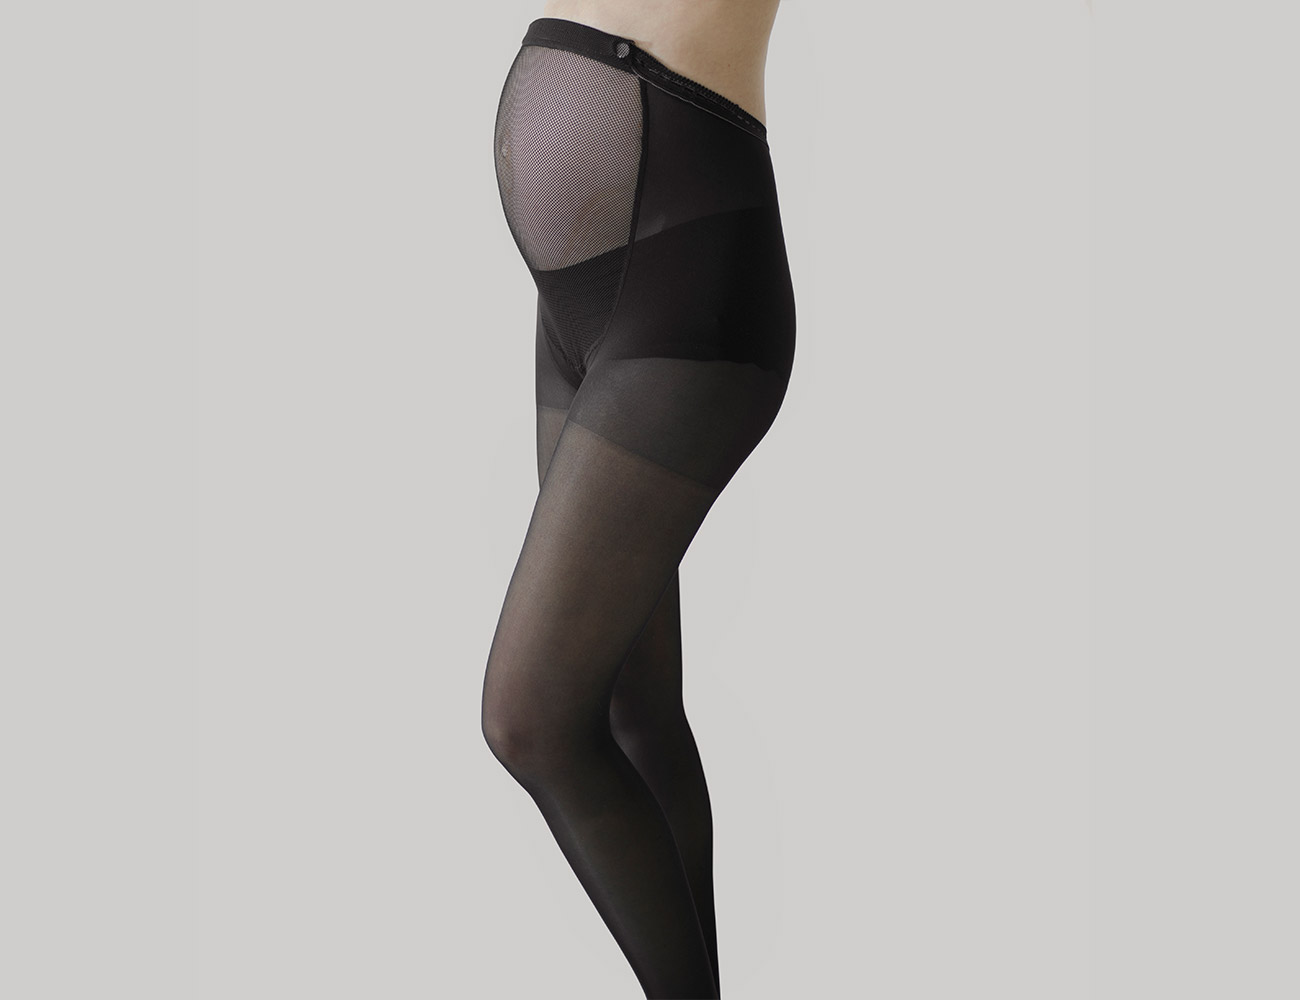 Graduated Compression Maternity Tights 140 Den